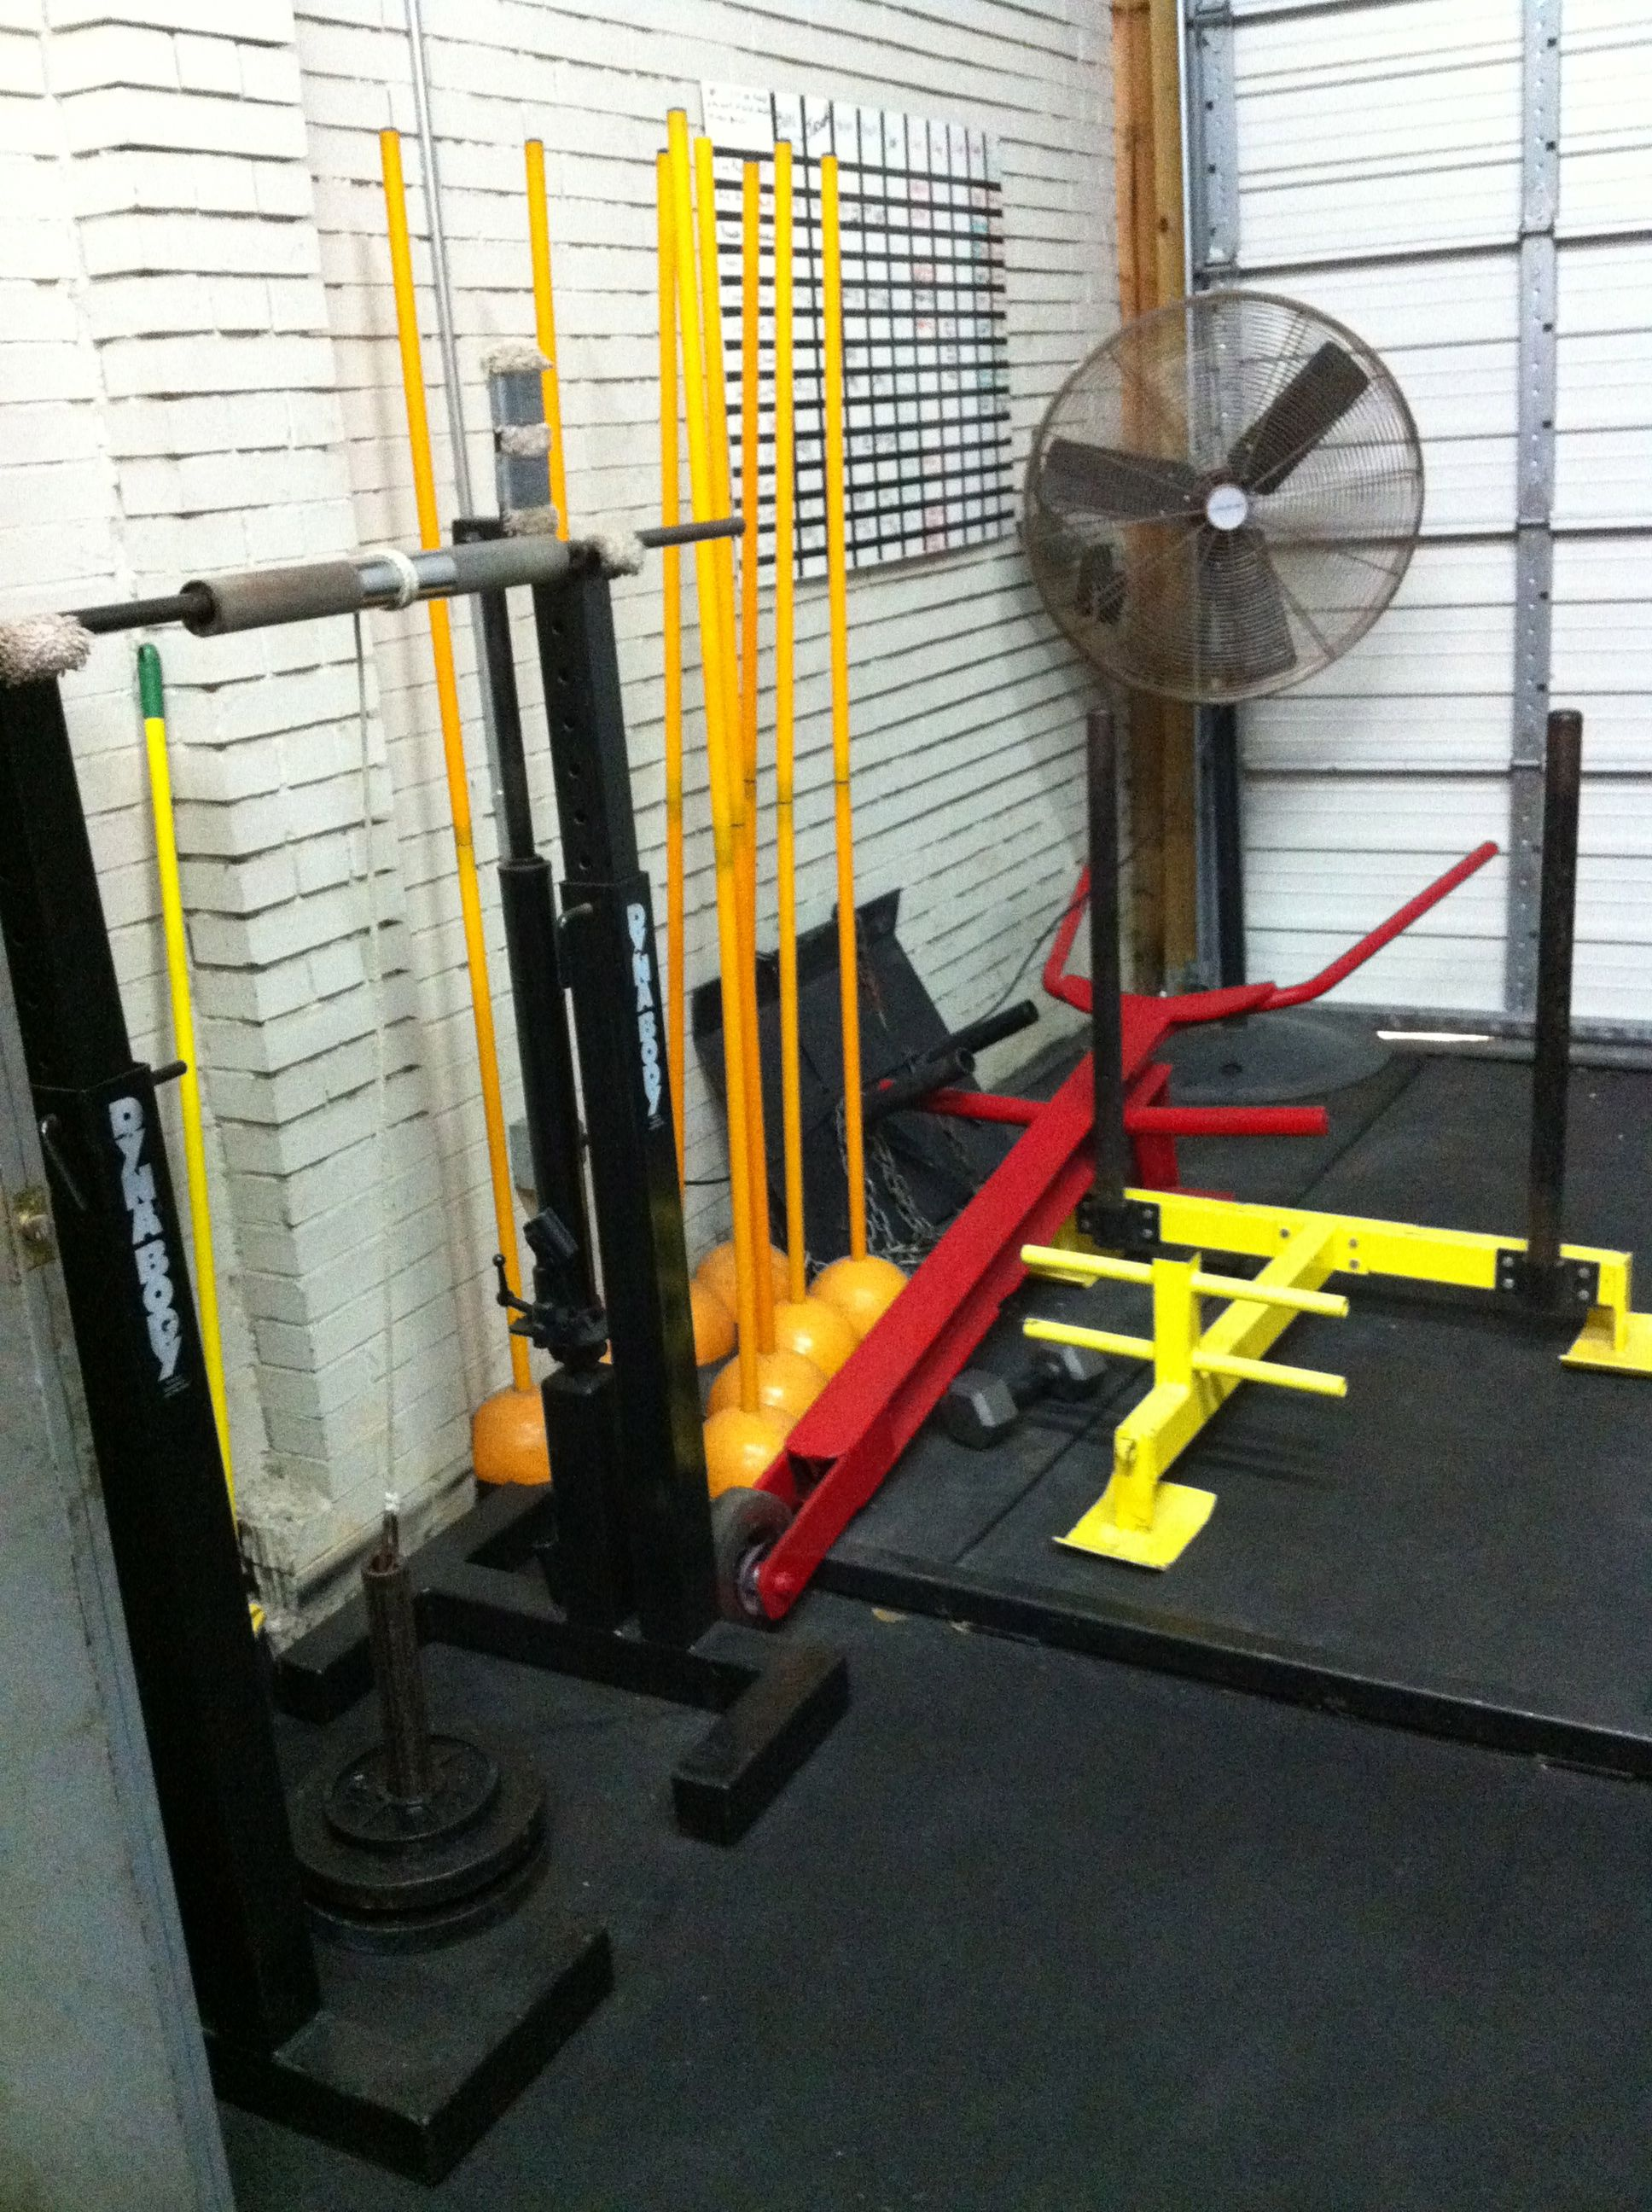 Power Barrow Prowler Sleds And More Home Icon Garage Gym Fitness Tools